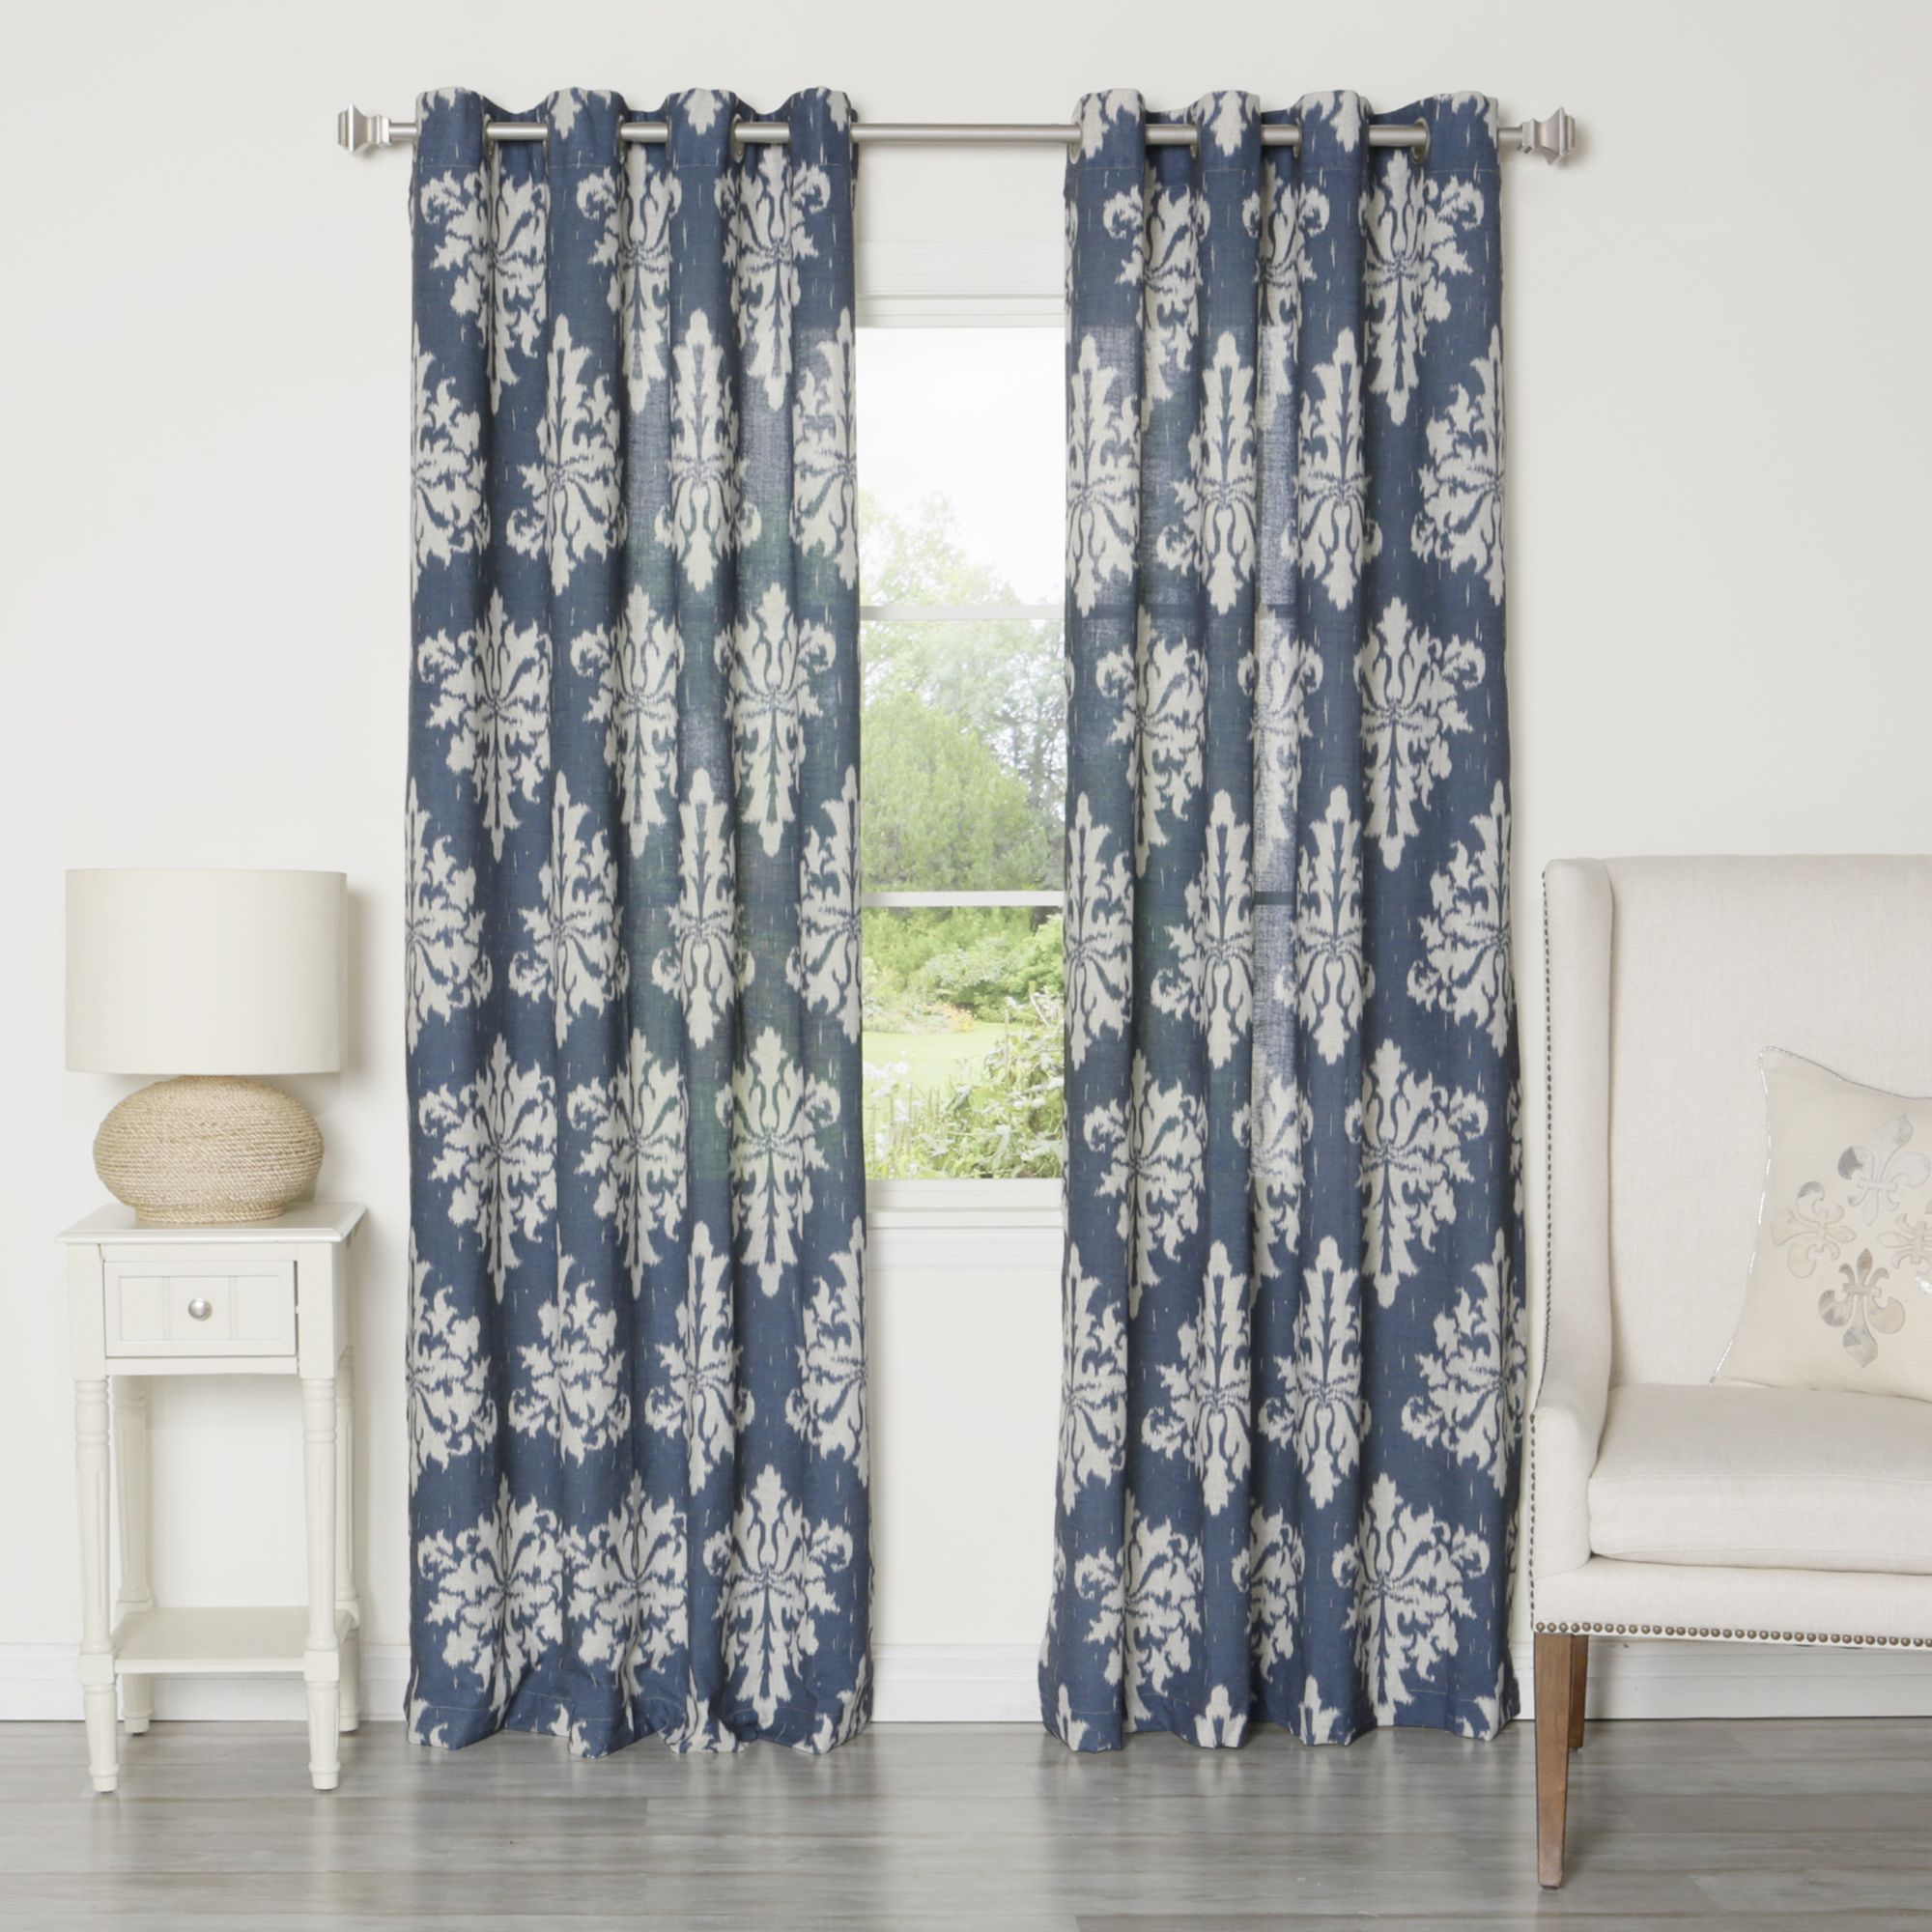 Curtain pair overstock shopping great deals on lights out curtains - Aurora Home Ikat Linen Grommet Top 84 Inch Curtain Panel Pair By Aurora Home